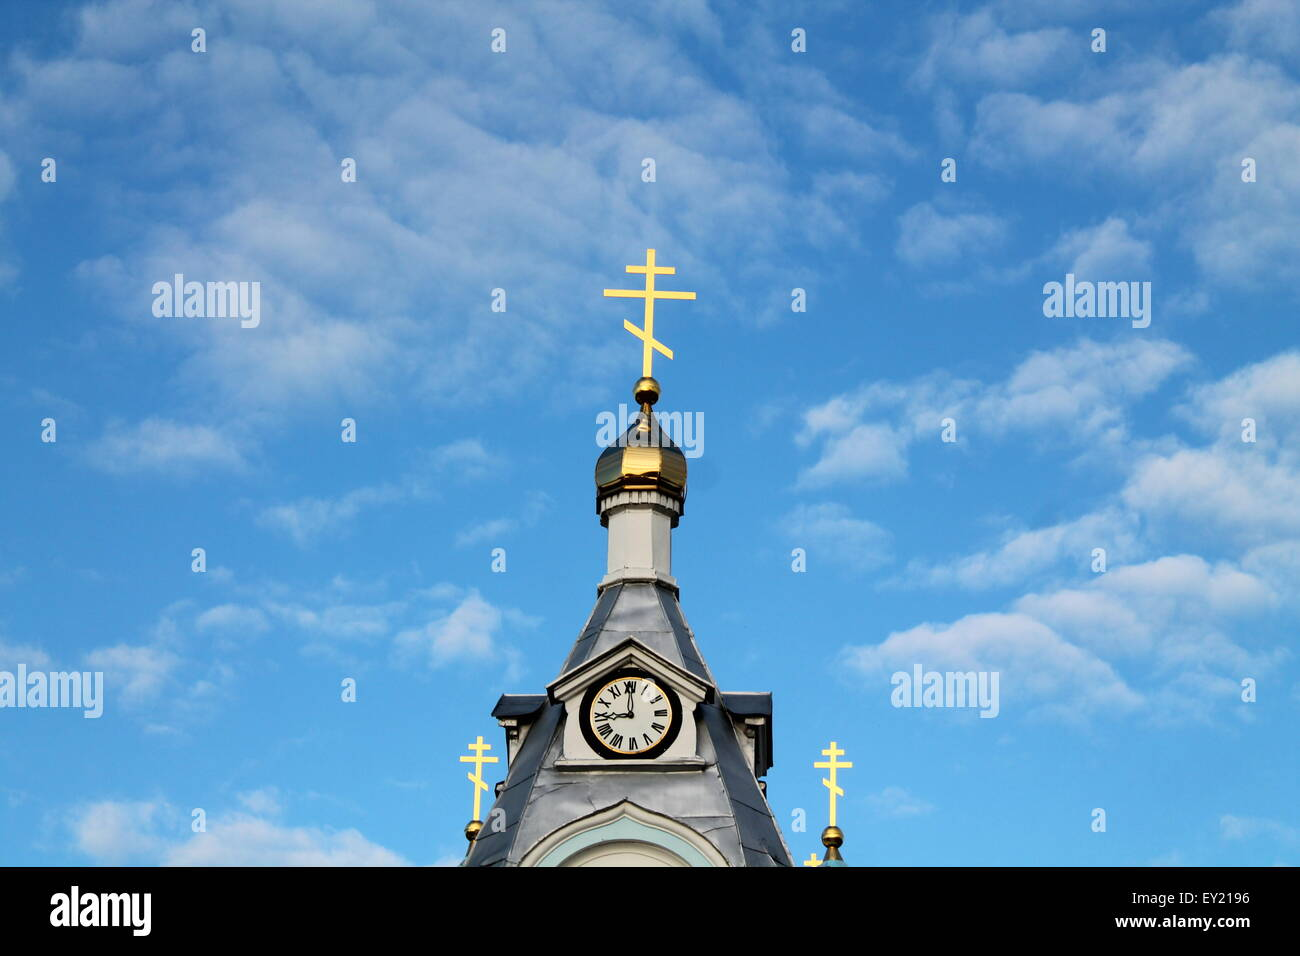 symbol of faith and believe shine crucifix on dome of orthodox church in blue sky Stock Photo